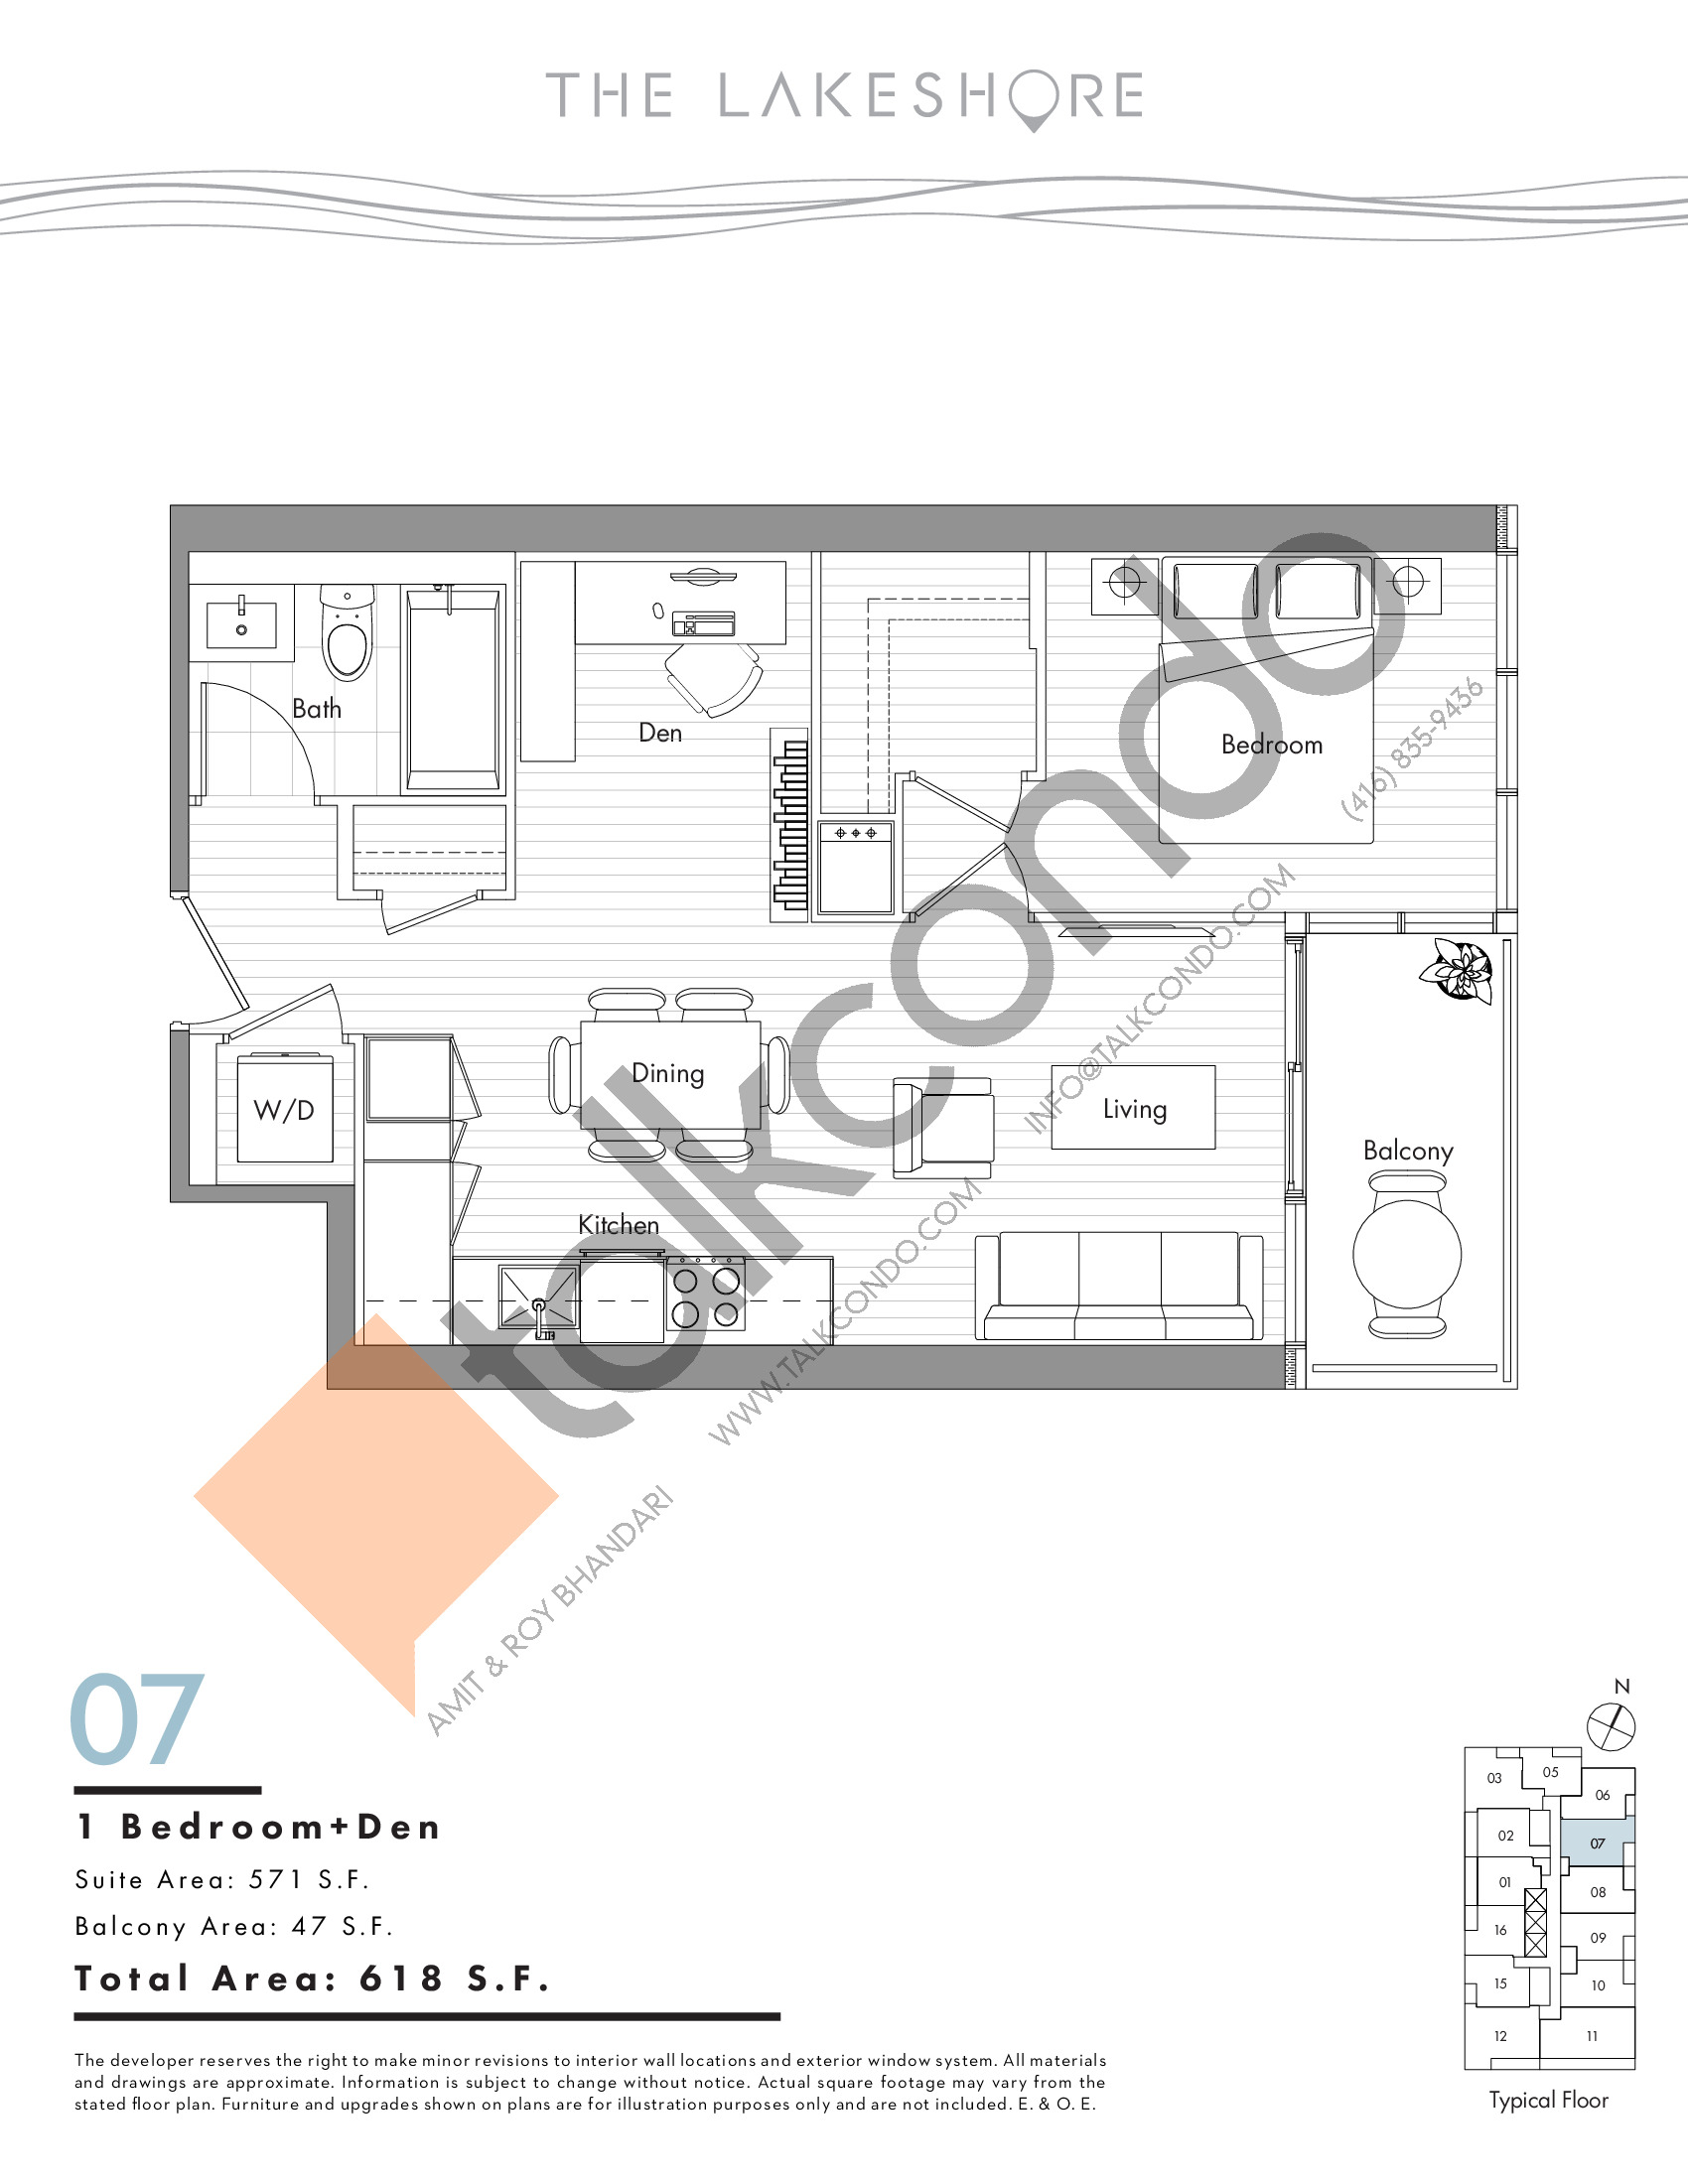 07 Floor Plan at The LakeShore Condos - 571 sq.ft